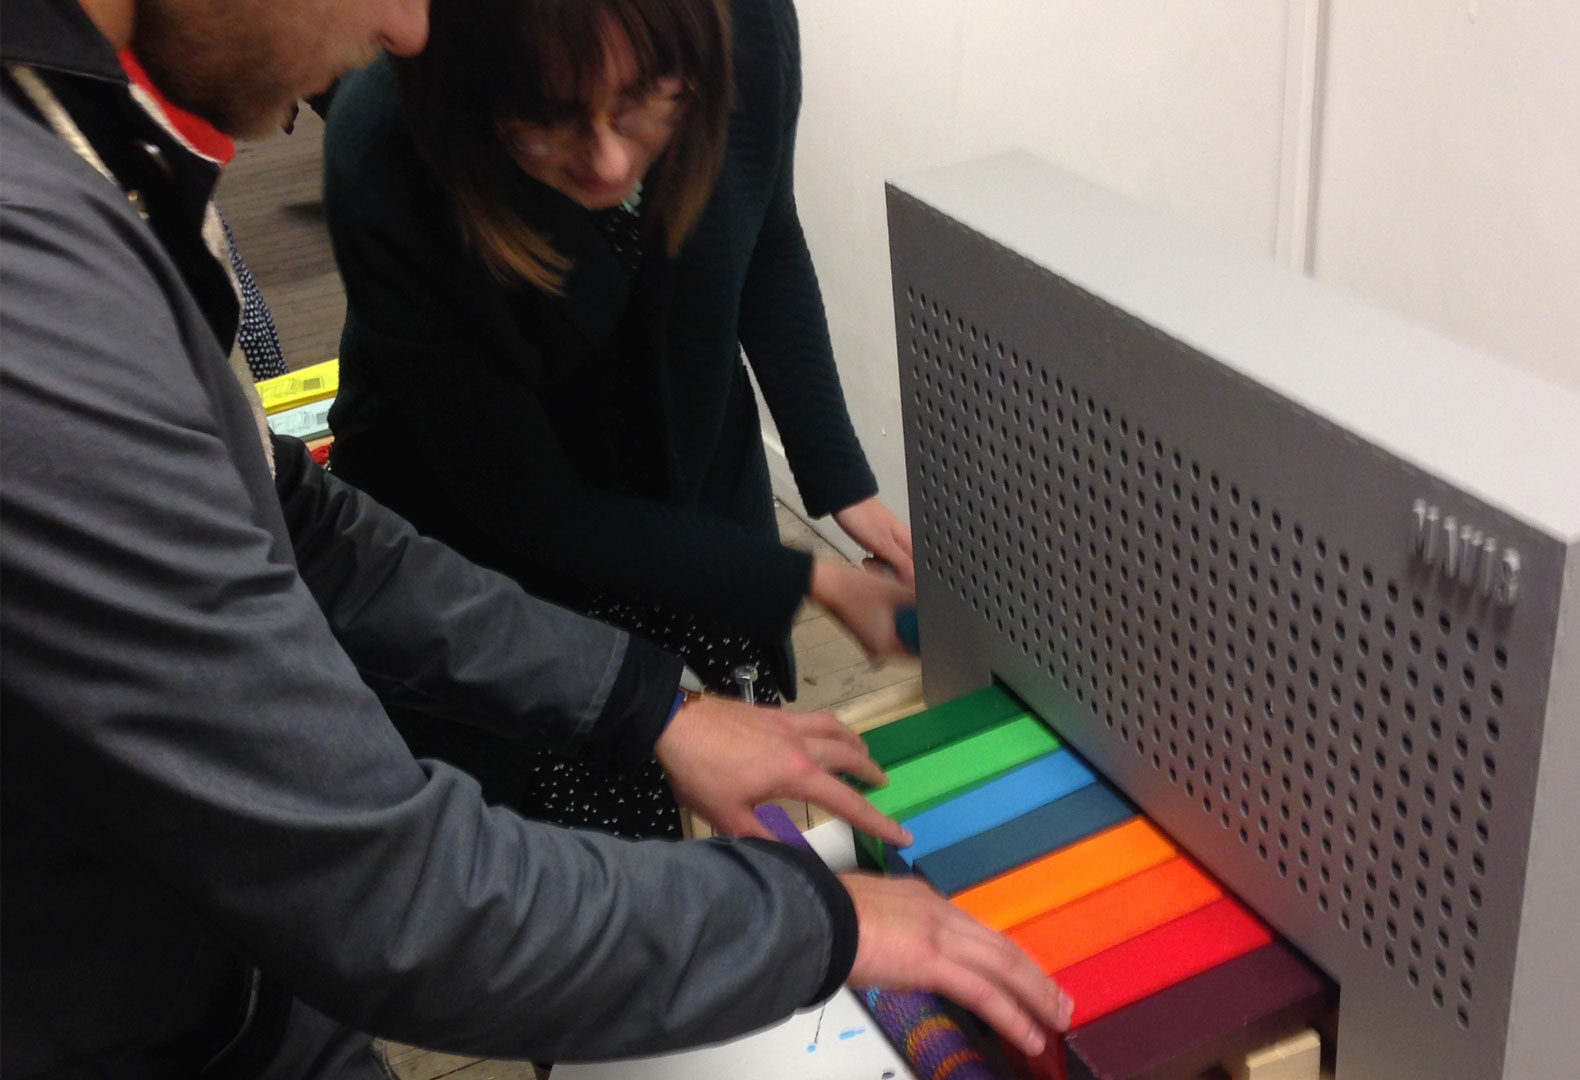 People playing with the MAVIS musical printing machine.